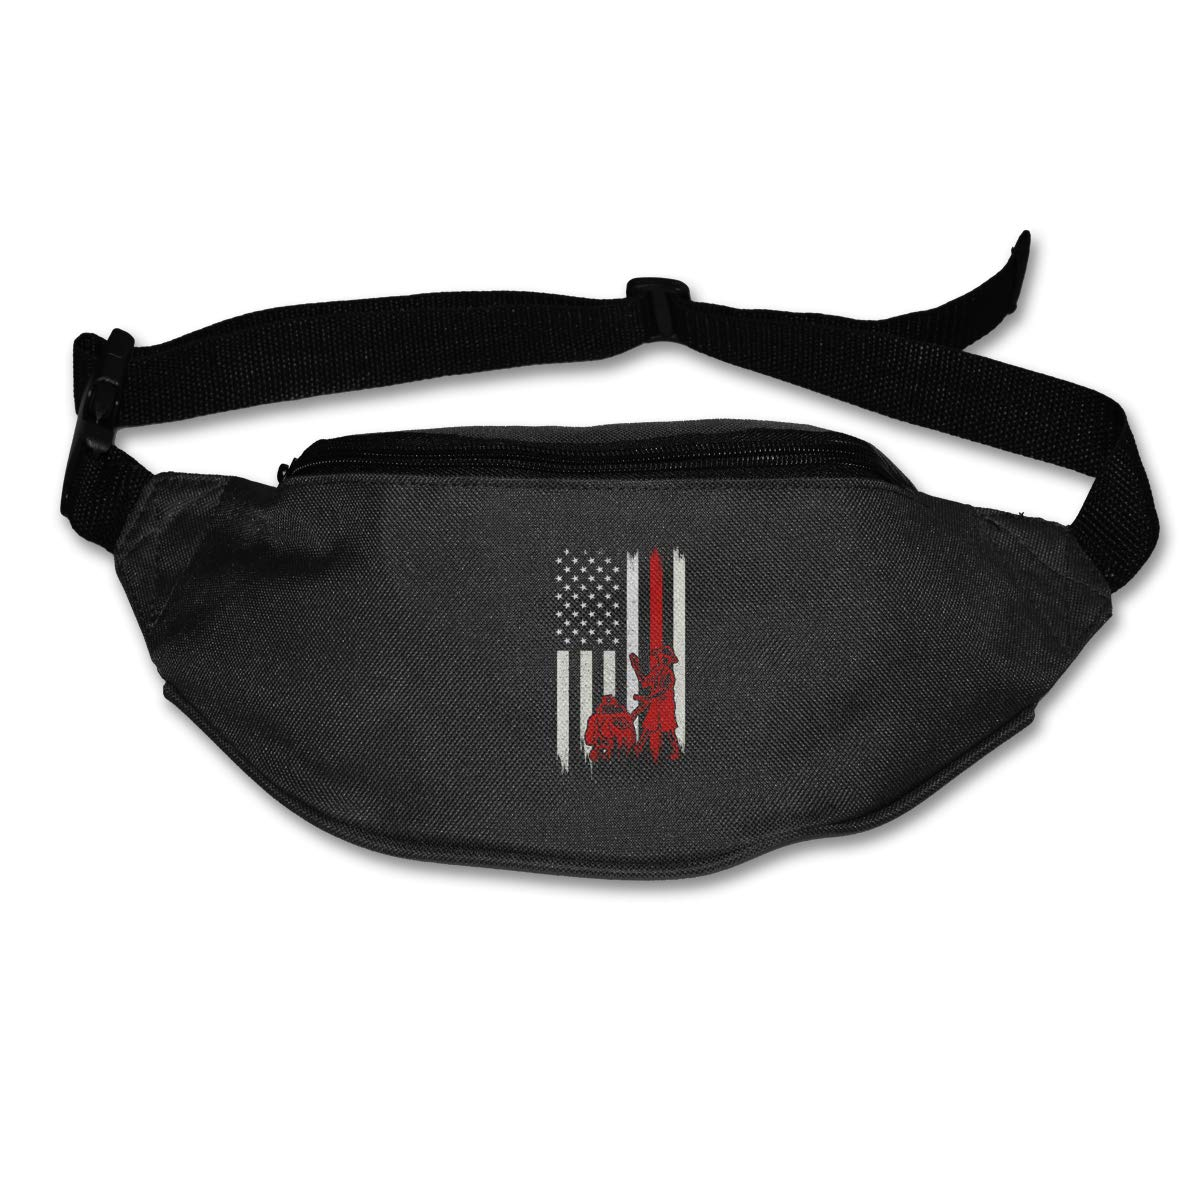 Postal Worker Us Flag Sport Waist Pack Fanny Pack Adjustable For Travel